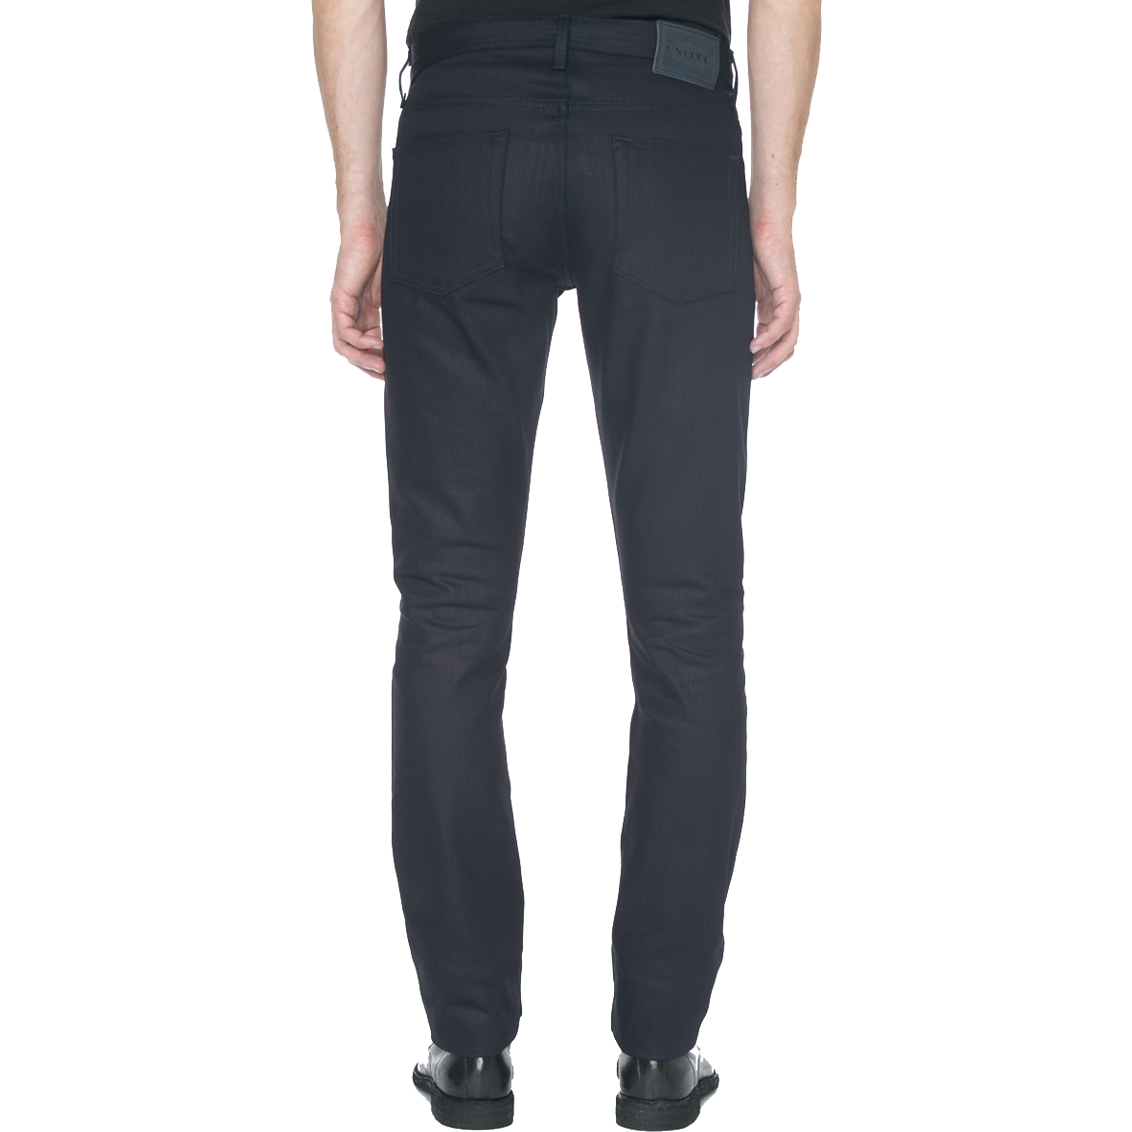 United Stock Dry Goods Navy Slight Fit Selvage Jeans